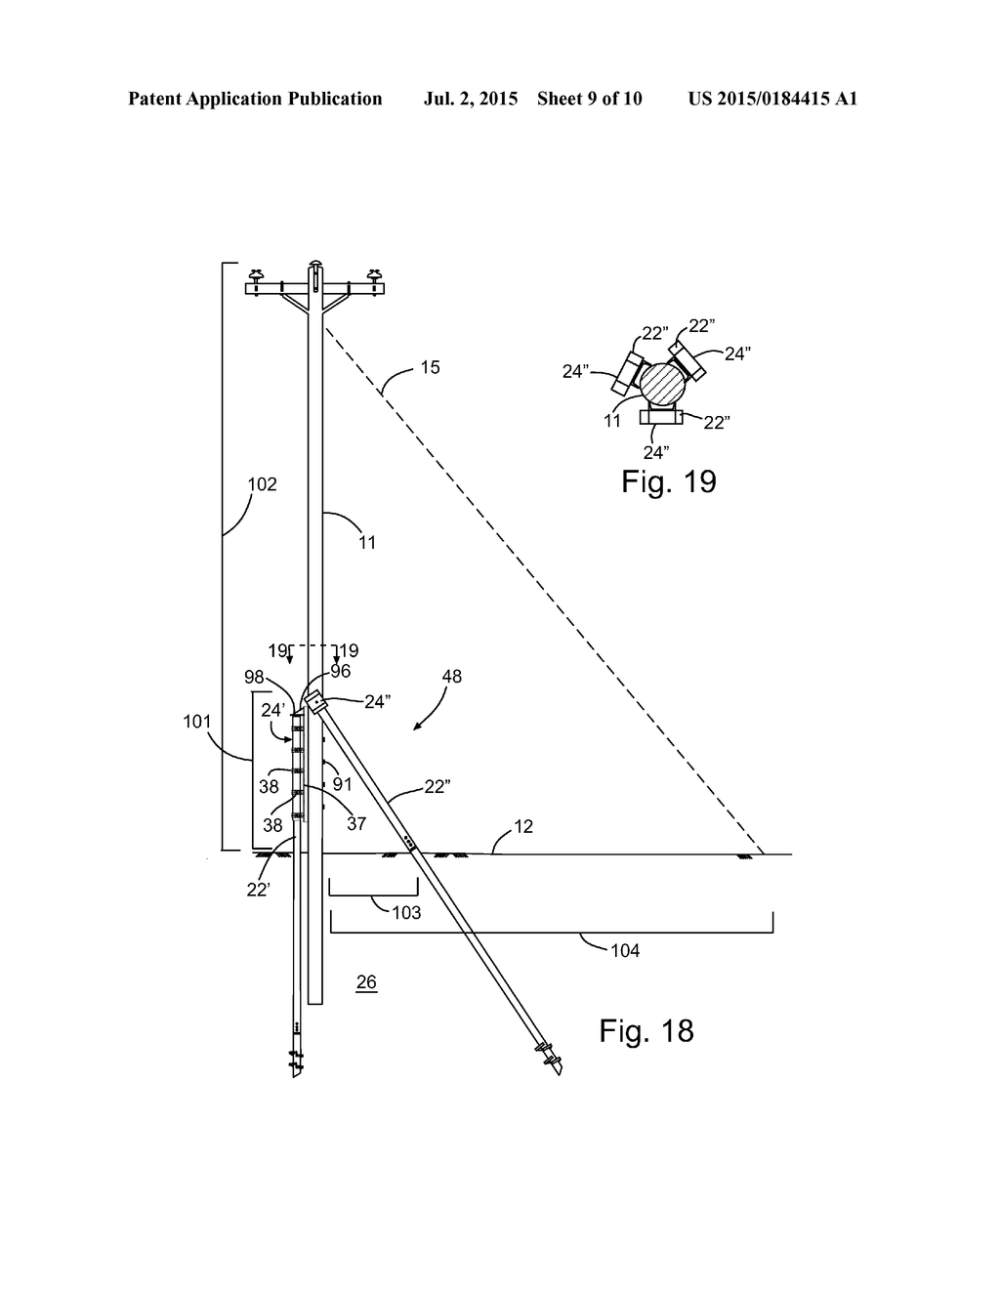 medium resolution of methods and apparatuses of supporting and bracing a utility pole diagram schematic and image 10